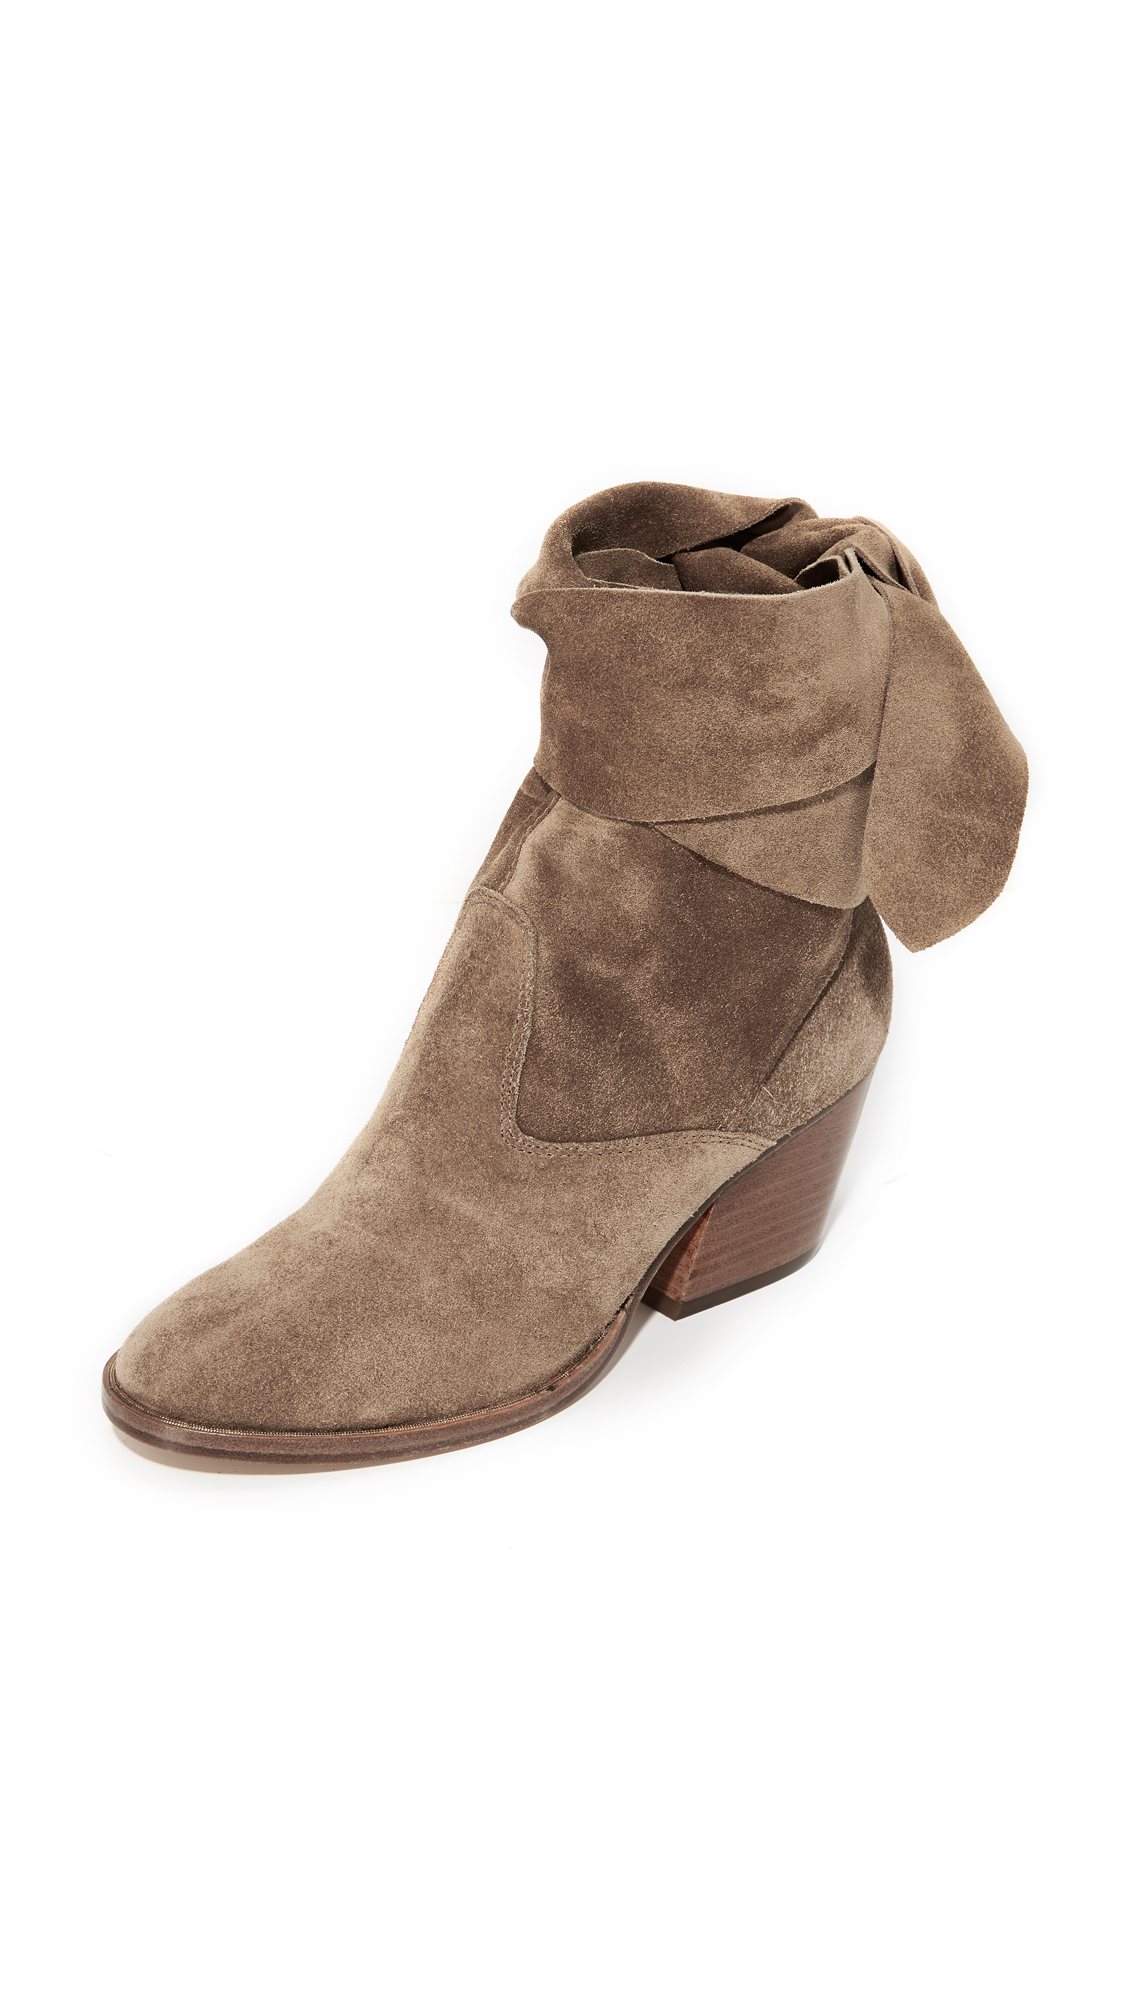 Sigerson Morrison Lori Suede Booties - Larice